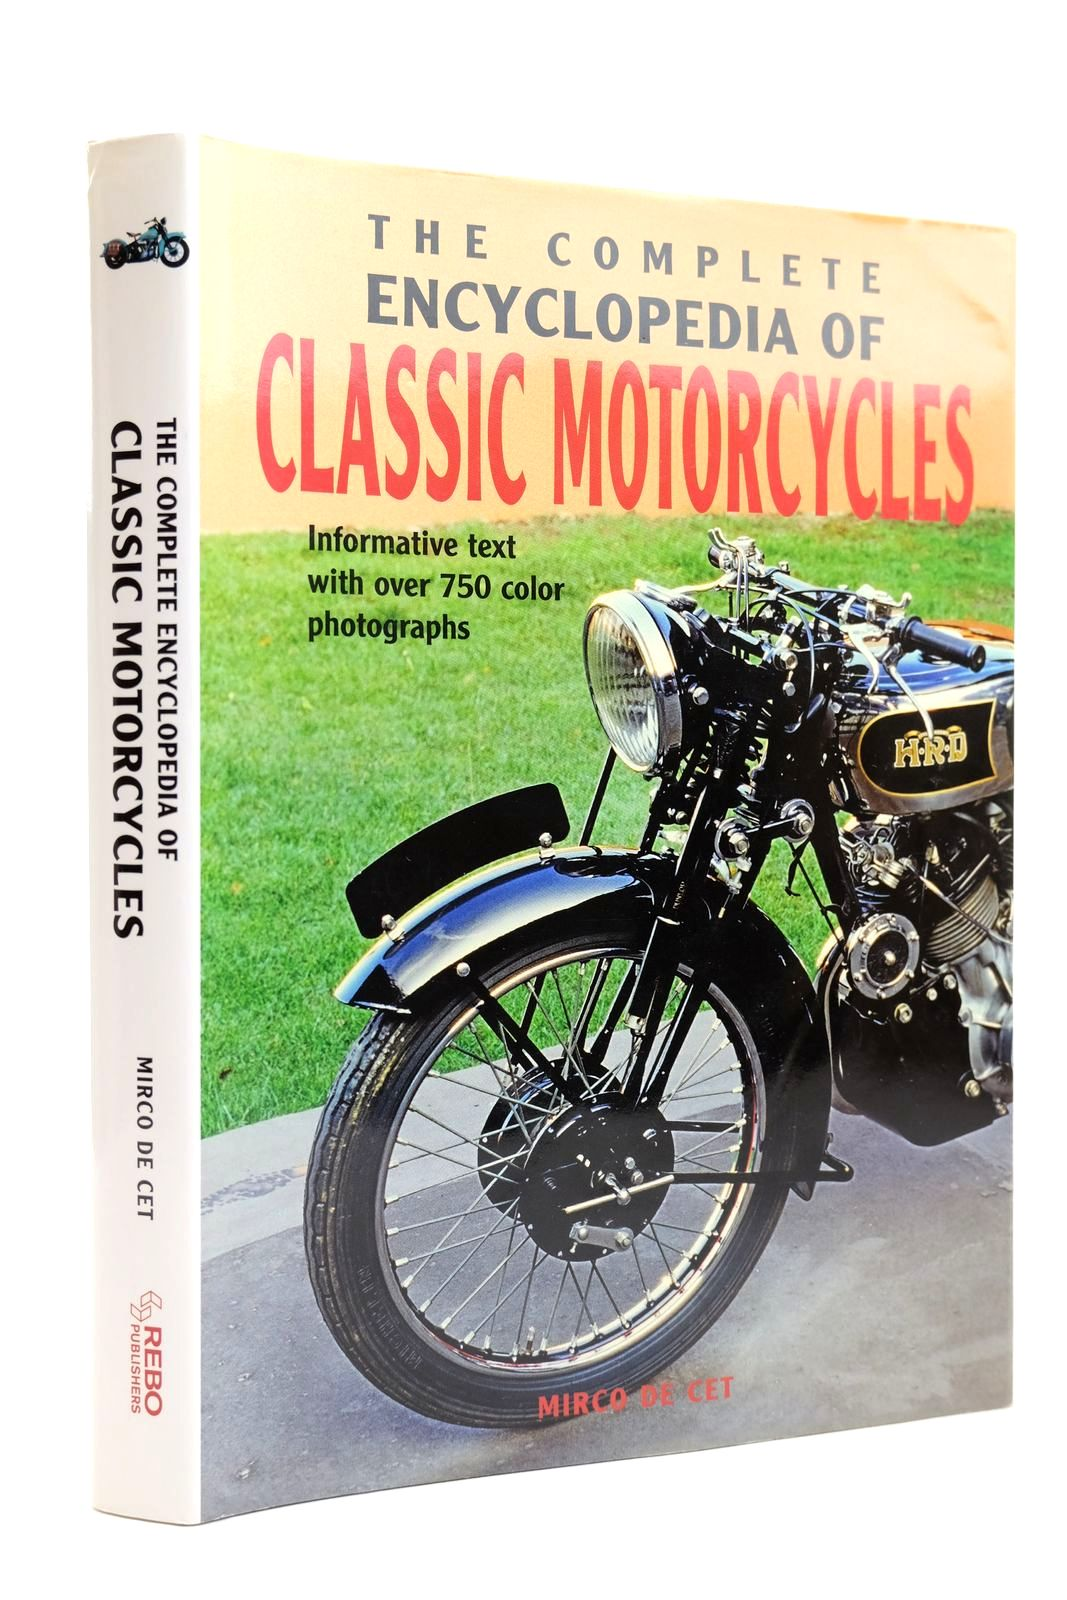 Photo of THE COMPLETE ENCYCLOPEDIA OF CLASSIC MOTORCYCLES written by De Cet, Mirco published by Rebo Publishers (STOCK CODE: 2131865)  for sale by Stella & Rose's Books